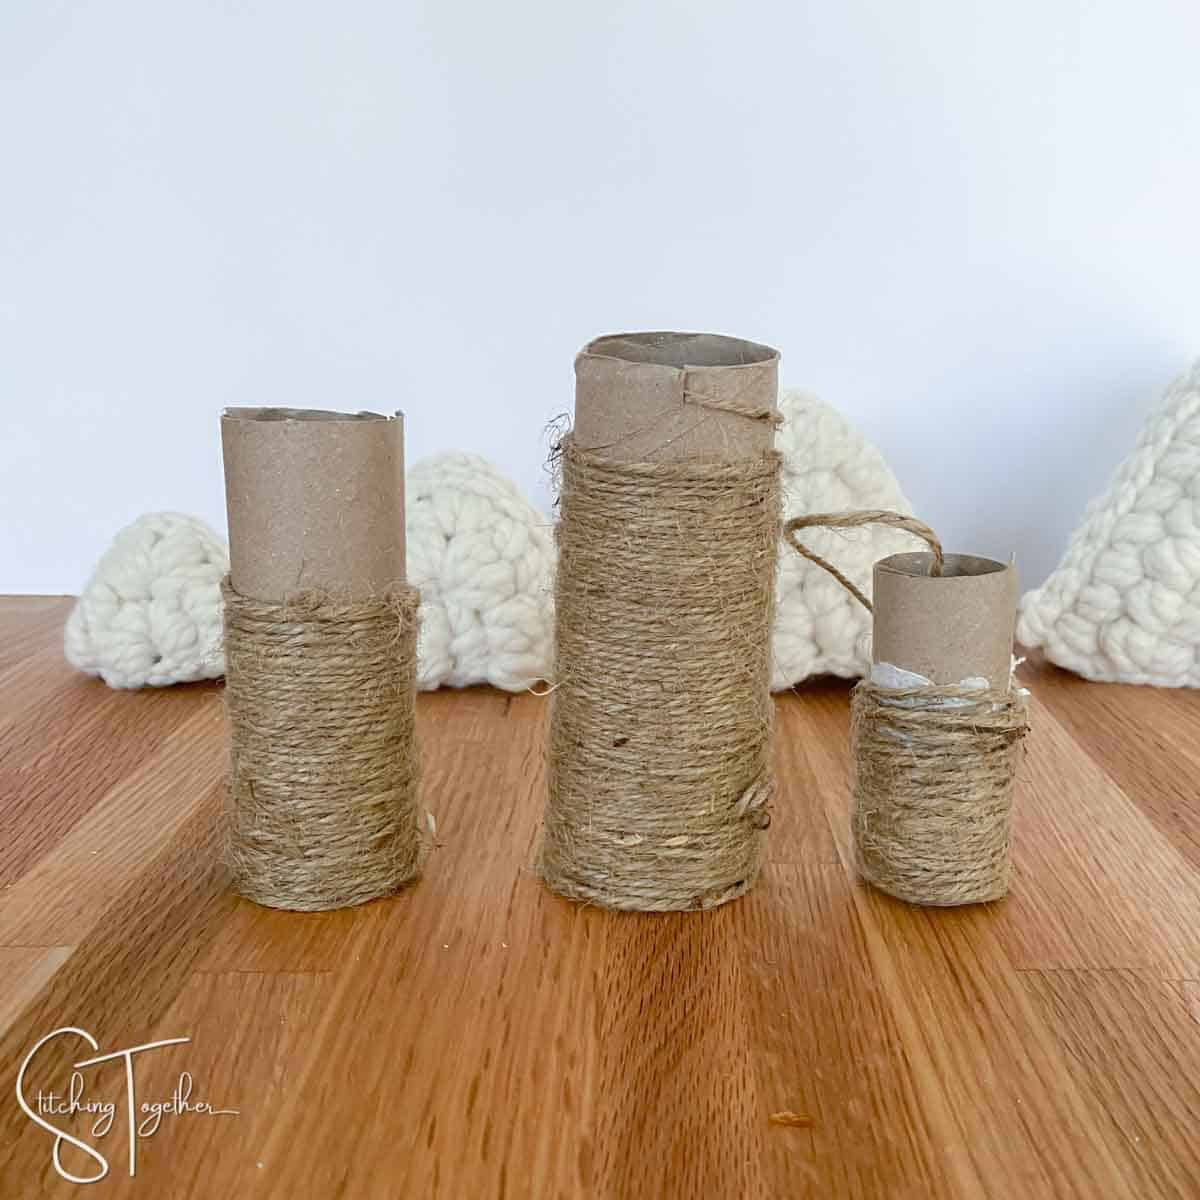 3 toilet paper rolls wrapped in jute twine